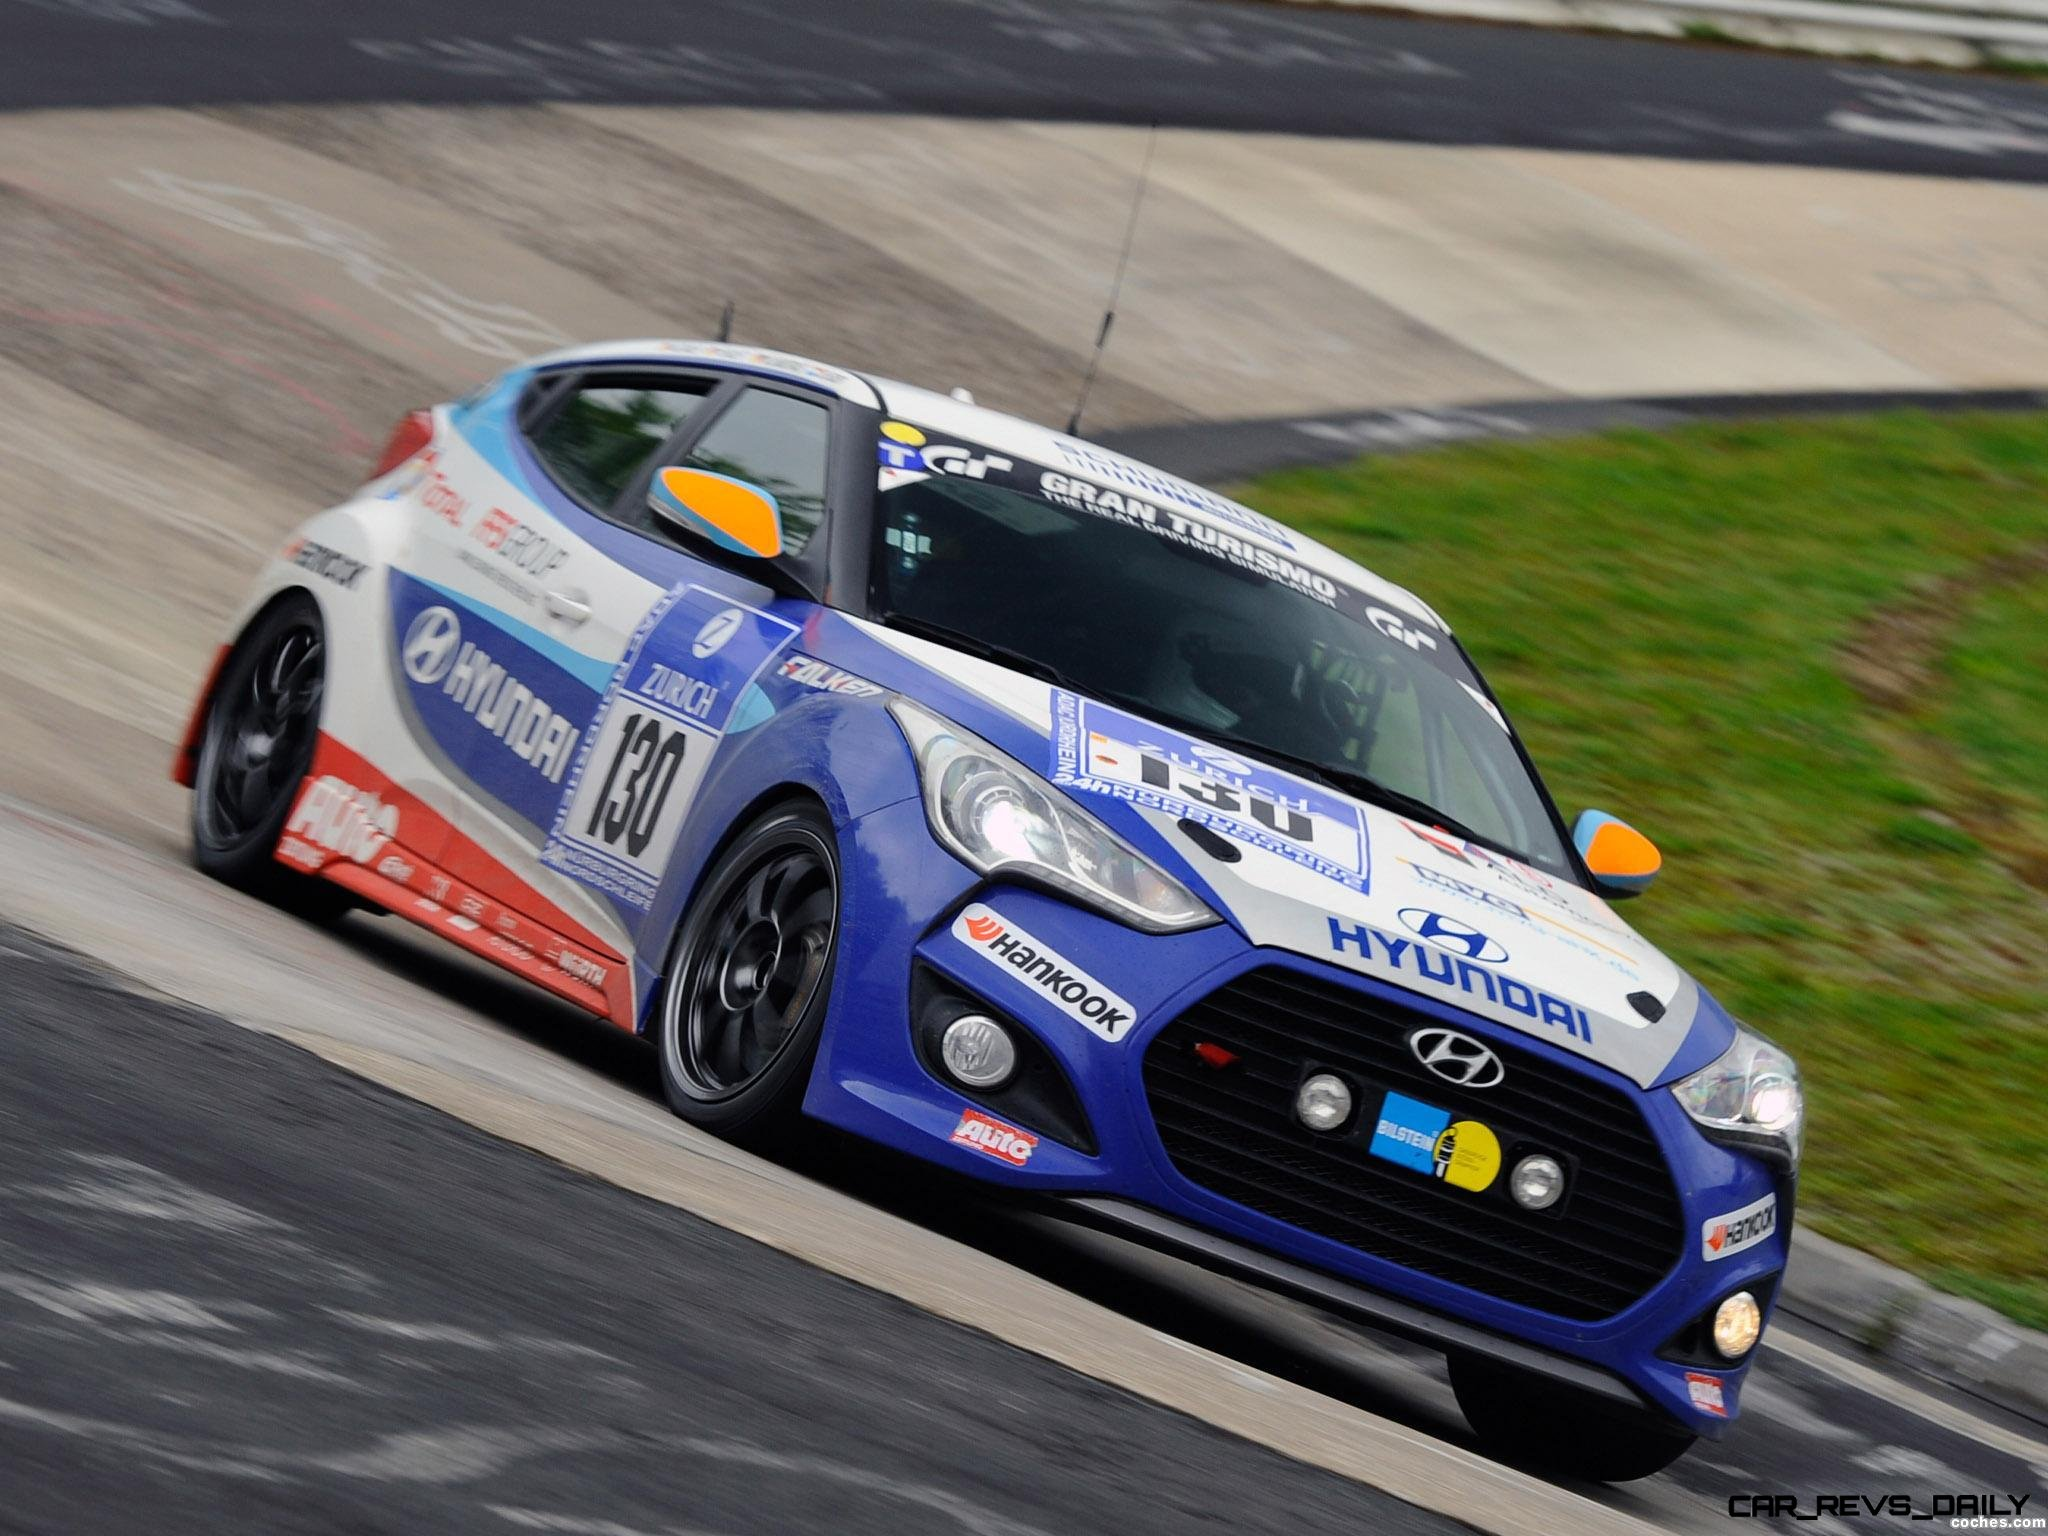 2014 Veloster R-Spec New for 2014 with Nurburgring Chassis Tech 57